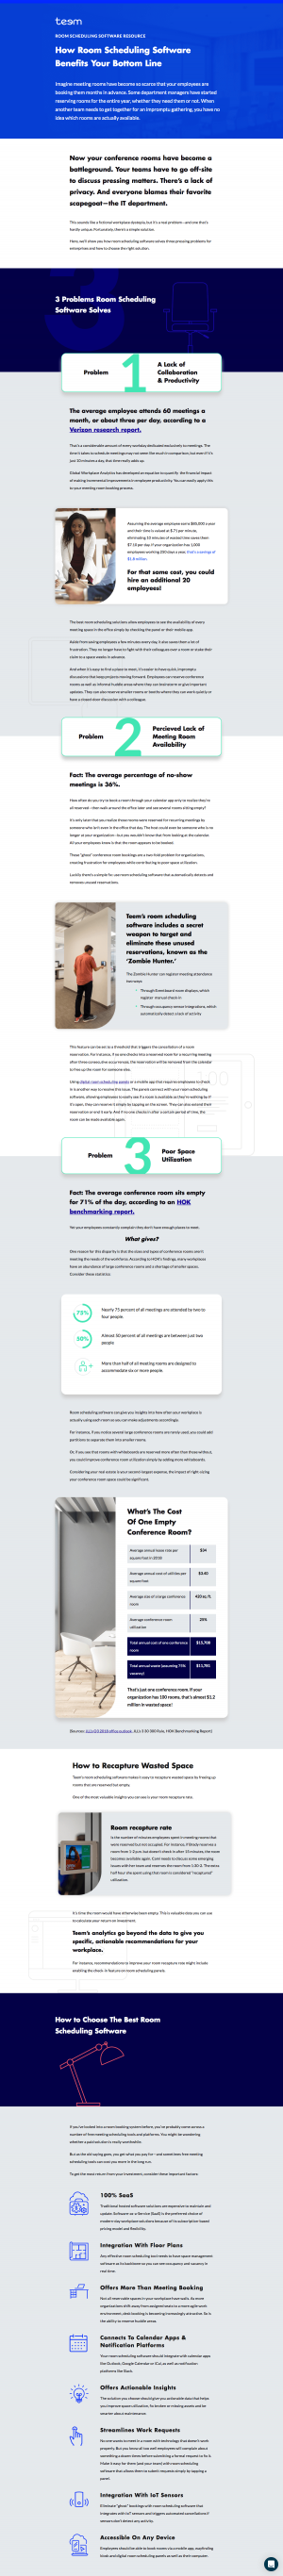 Teem – Resources page 2